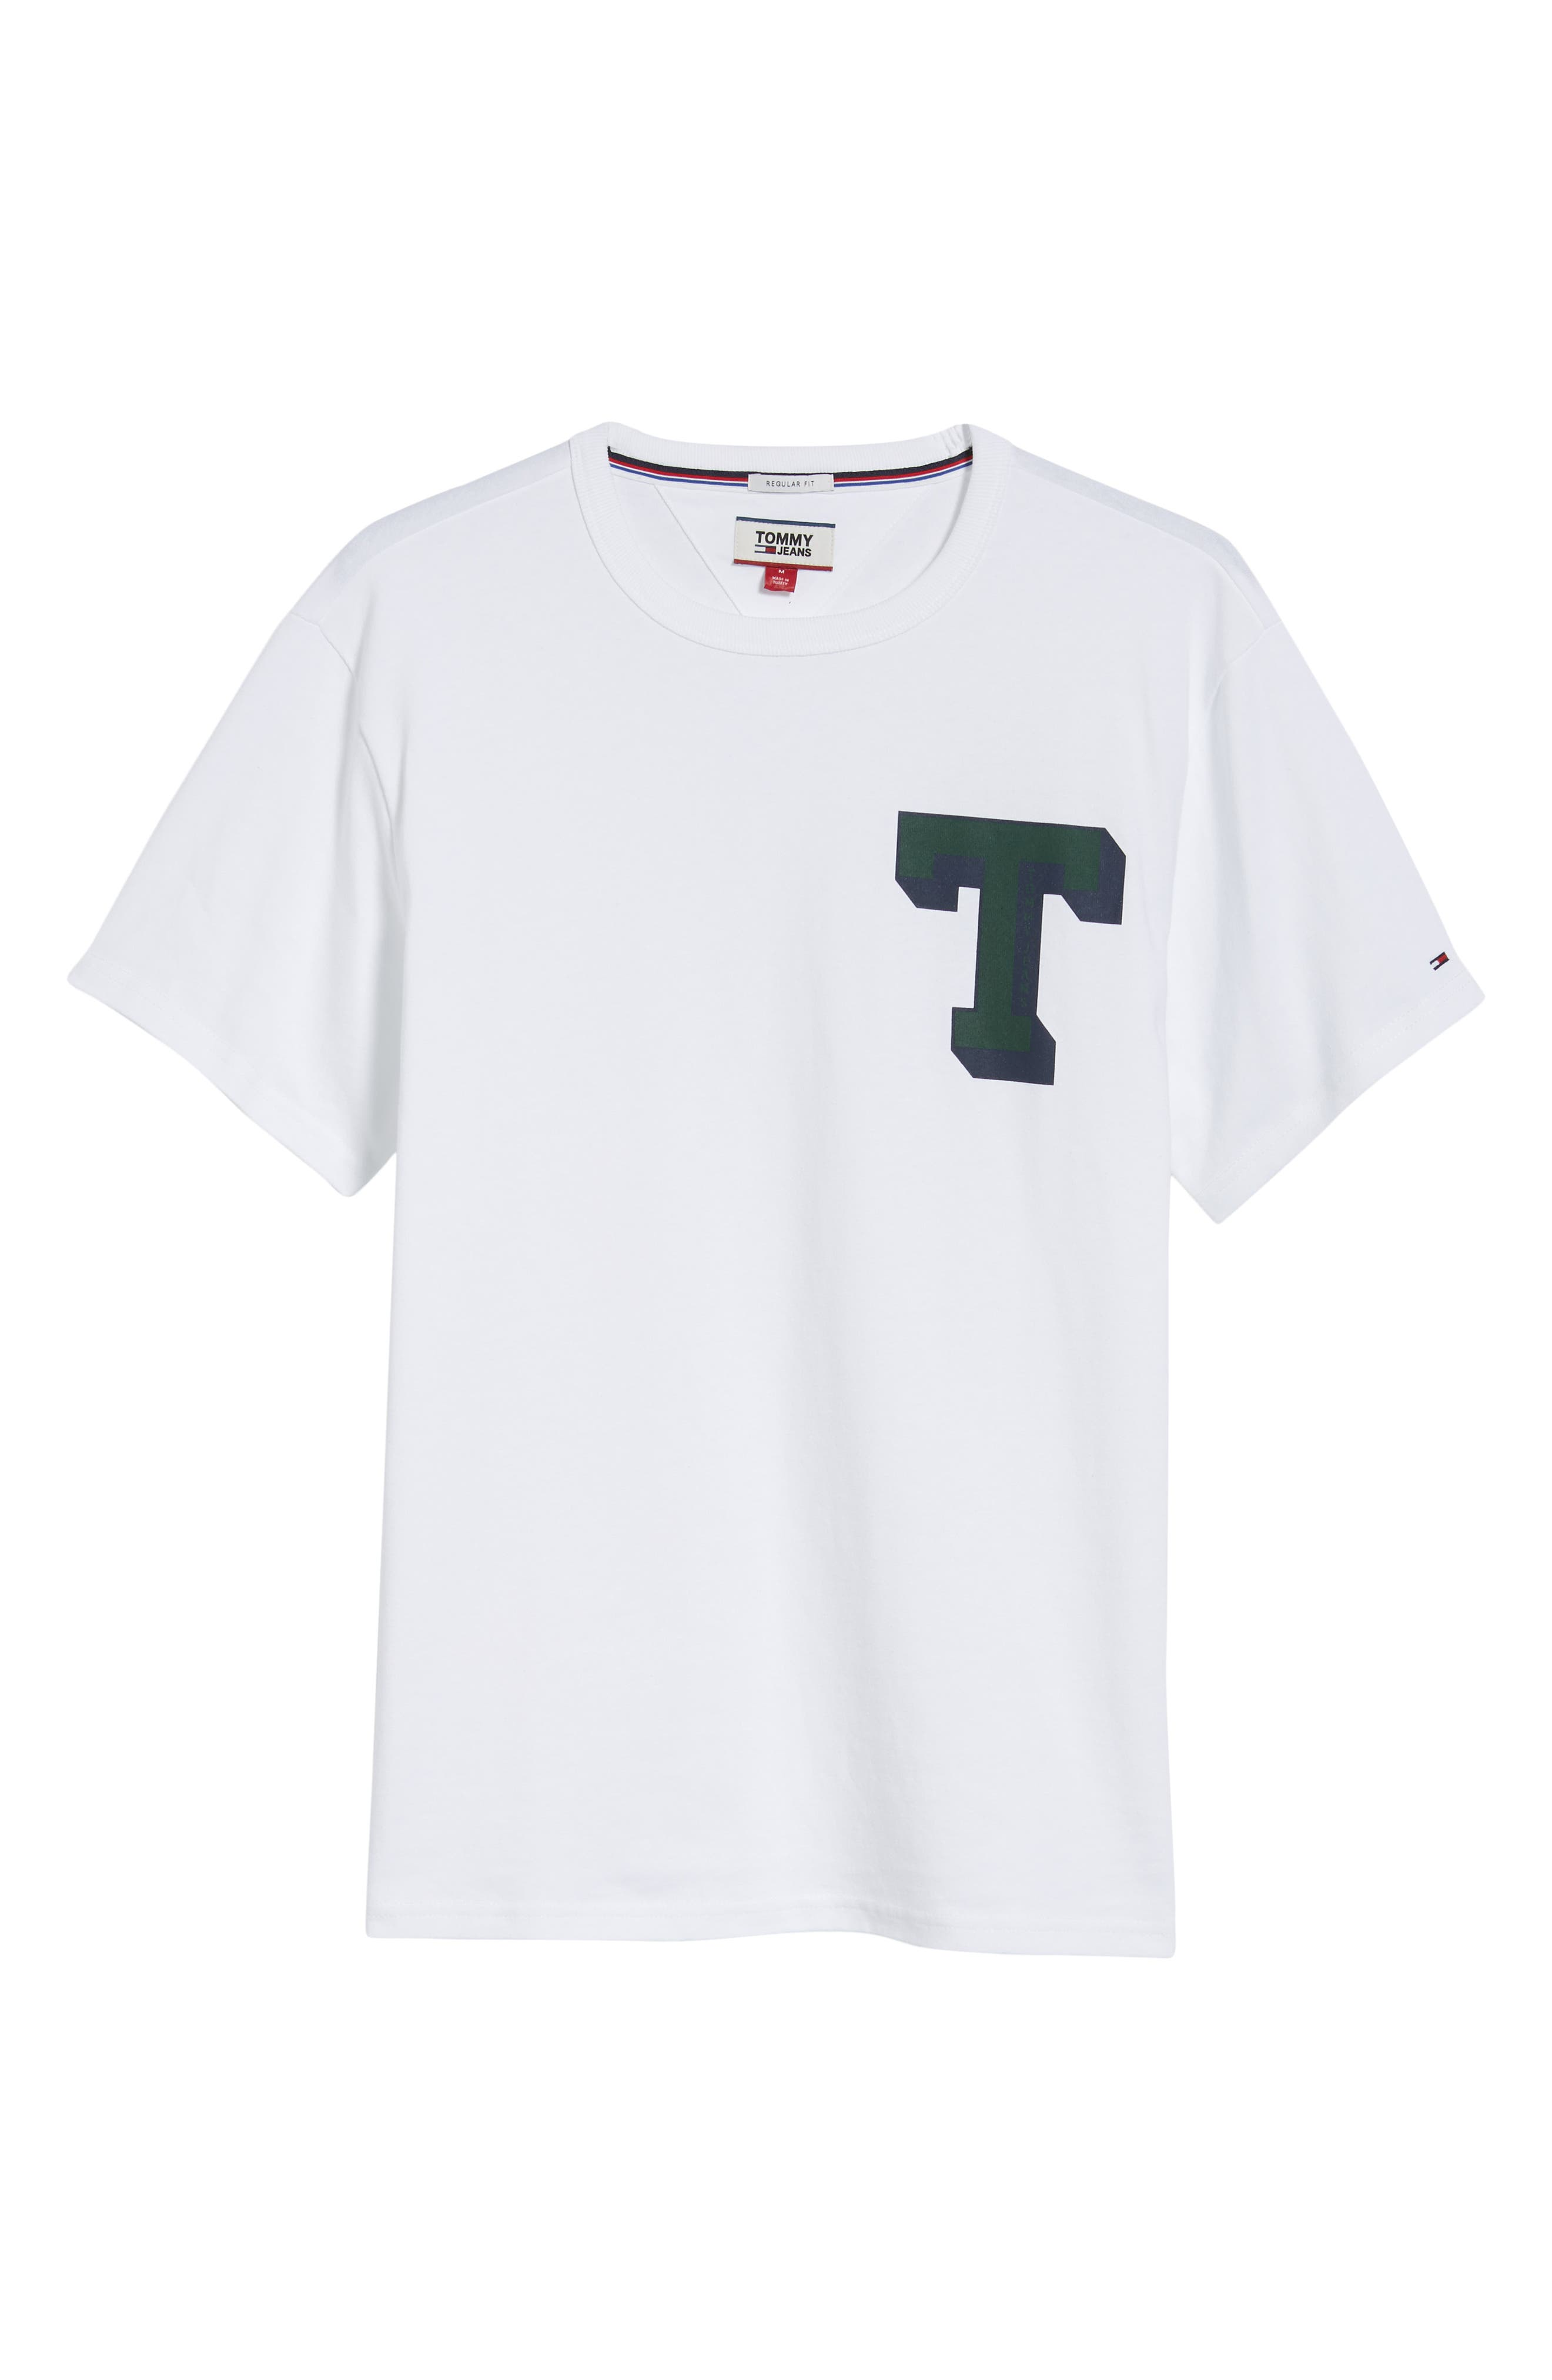 TOMMY JEANS,                             Essential Graphic T-Shirt,                             Alternate thumbnail 6, color,                             100